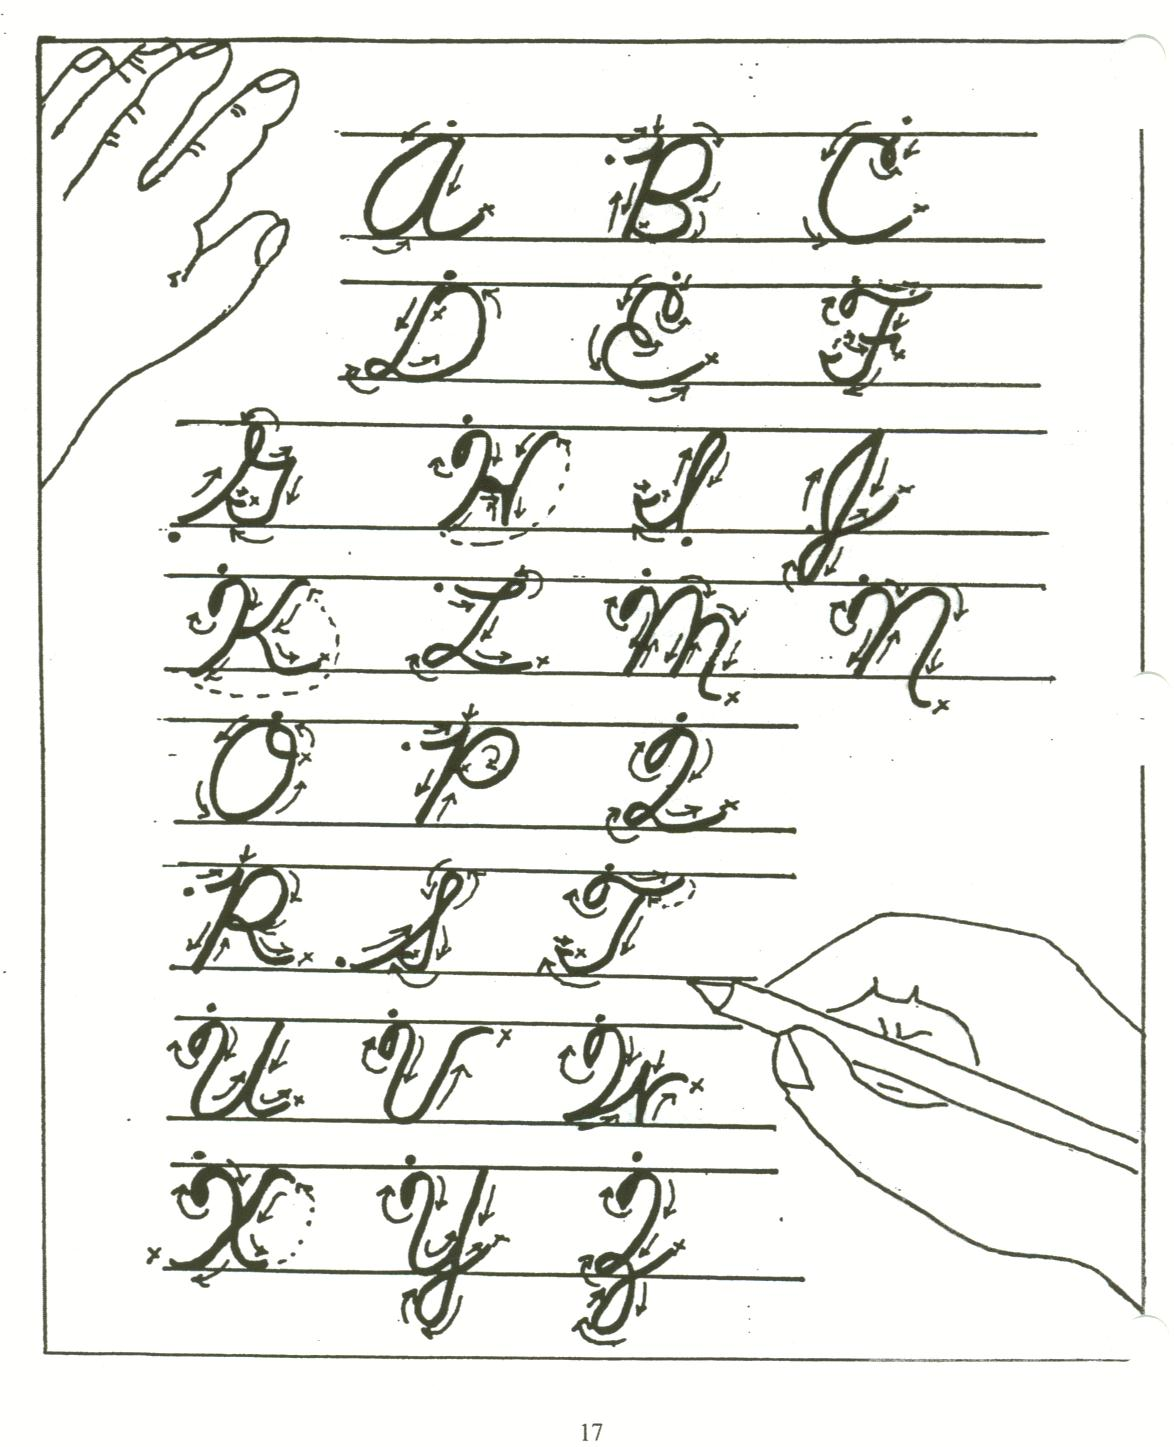 Cursive Handwriting   step by step for beginners   Practical Pages besides How to write in cursive for beginners together with Dotted Alphabet Worksheets further Cursive Writing Alphabet Worksheets Printable Choice Image Uppercase together with Cursive writing practice worksheets alphabet   Download them and try moreover Beginning Writing Printable Free Cursive Handwriting Worksheet Easy furthermore Cursive Letters A Z   Education moreover Cursive Handwriting Alphabet Sheet also cursive handwriting alphabet worksheets – lenhdeche additionally Cursive Handwriting Worksheets Writing Template Pdf Practice Grade together with Cursive Worksheet Handwriting Alphabet Worksheets Writing To Print further Cursive writing alphabet worksheets pdf  1922965   Science for all also Free Printing and Cursive Handwriting Worksheets further  further Free Worksheets Liry   Download and Print Worksheets   Free on likewise Cursive writing worksheets free alphabet   Download them and try to. on cursive writing alphabet worksheets free